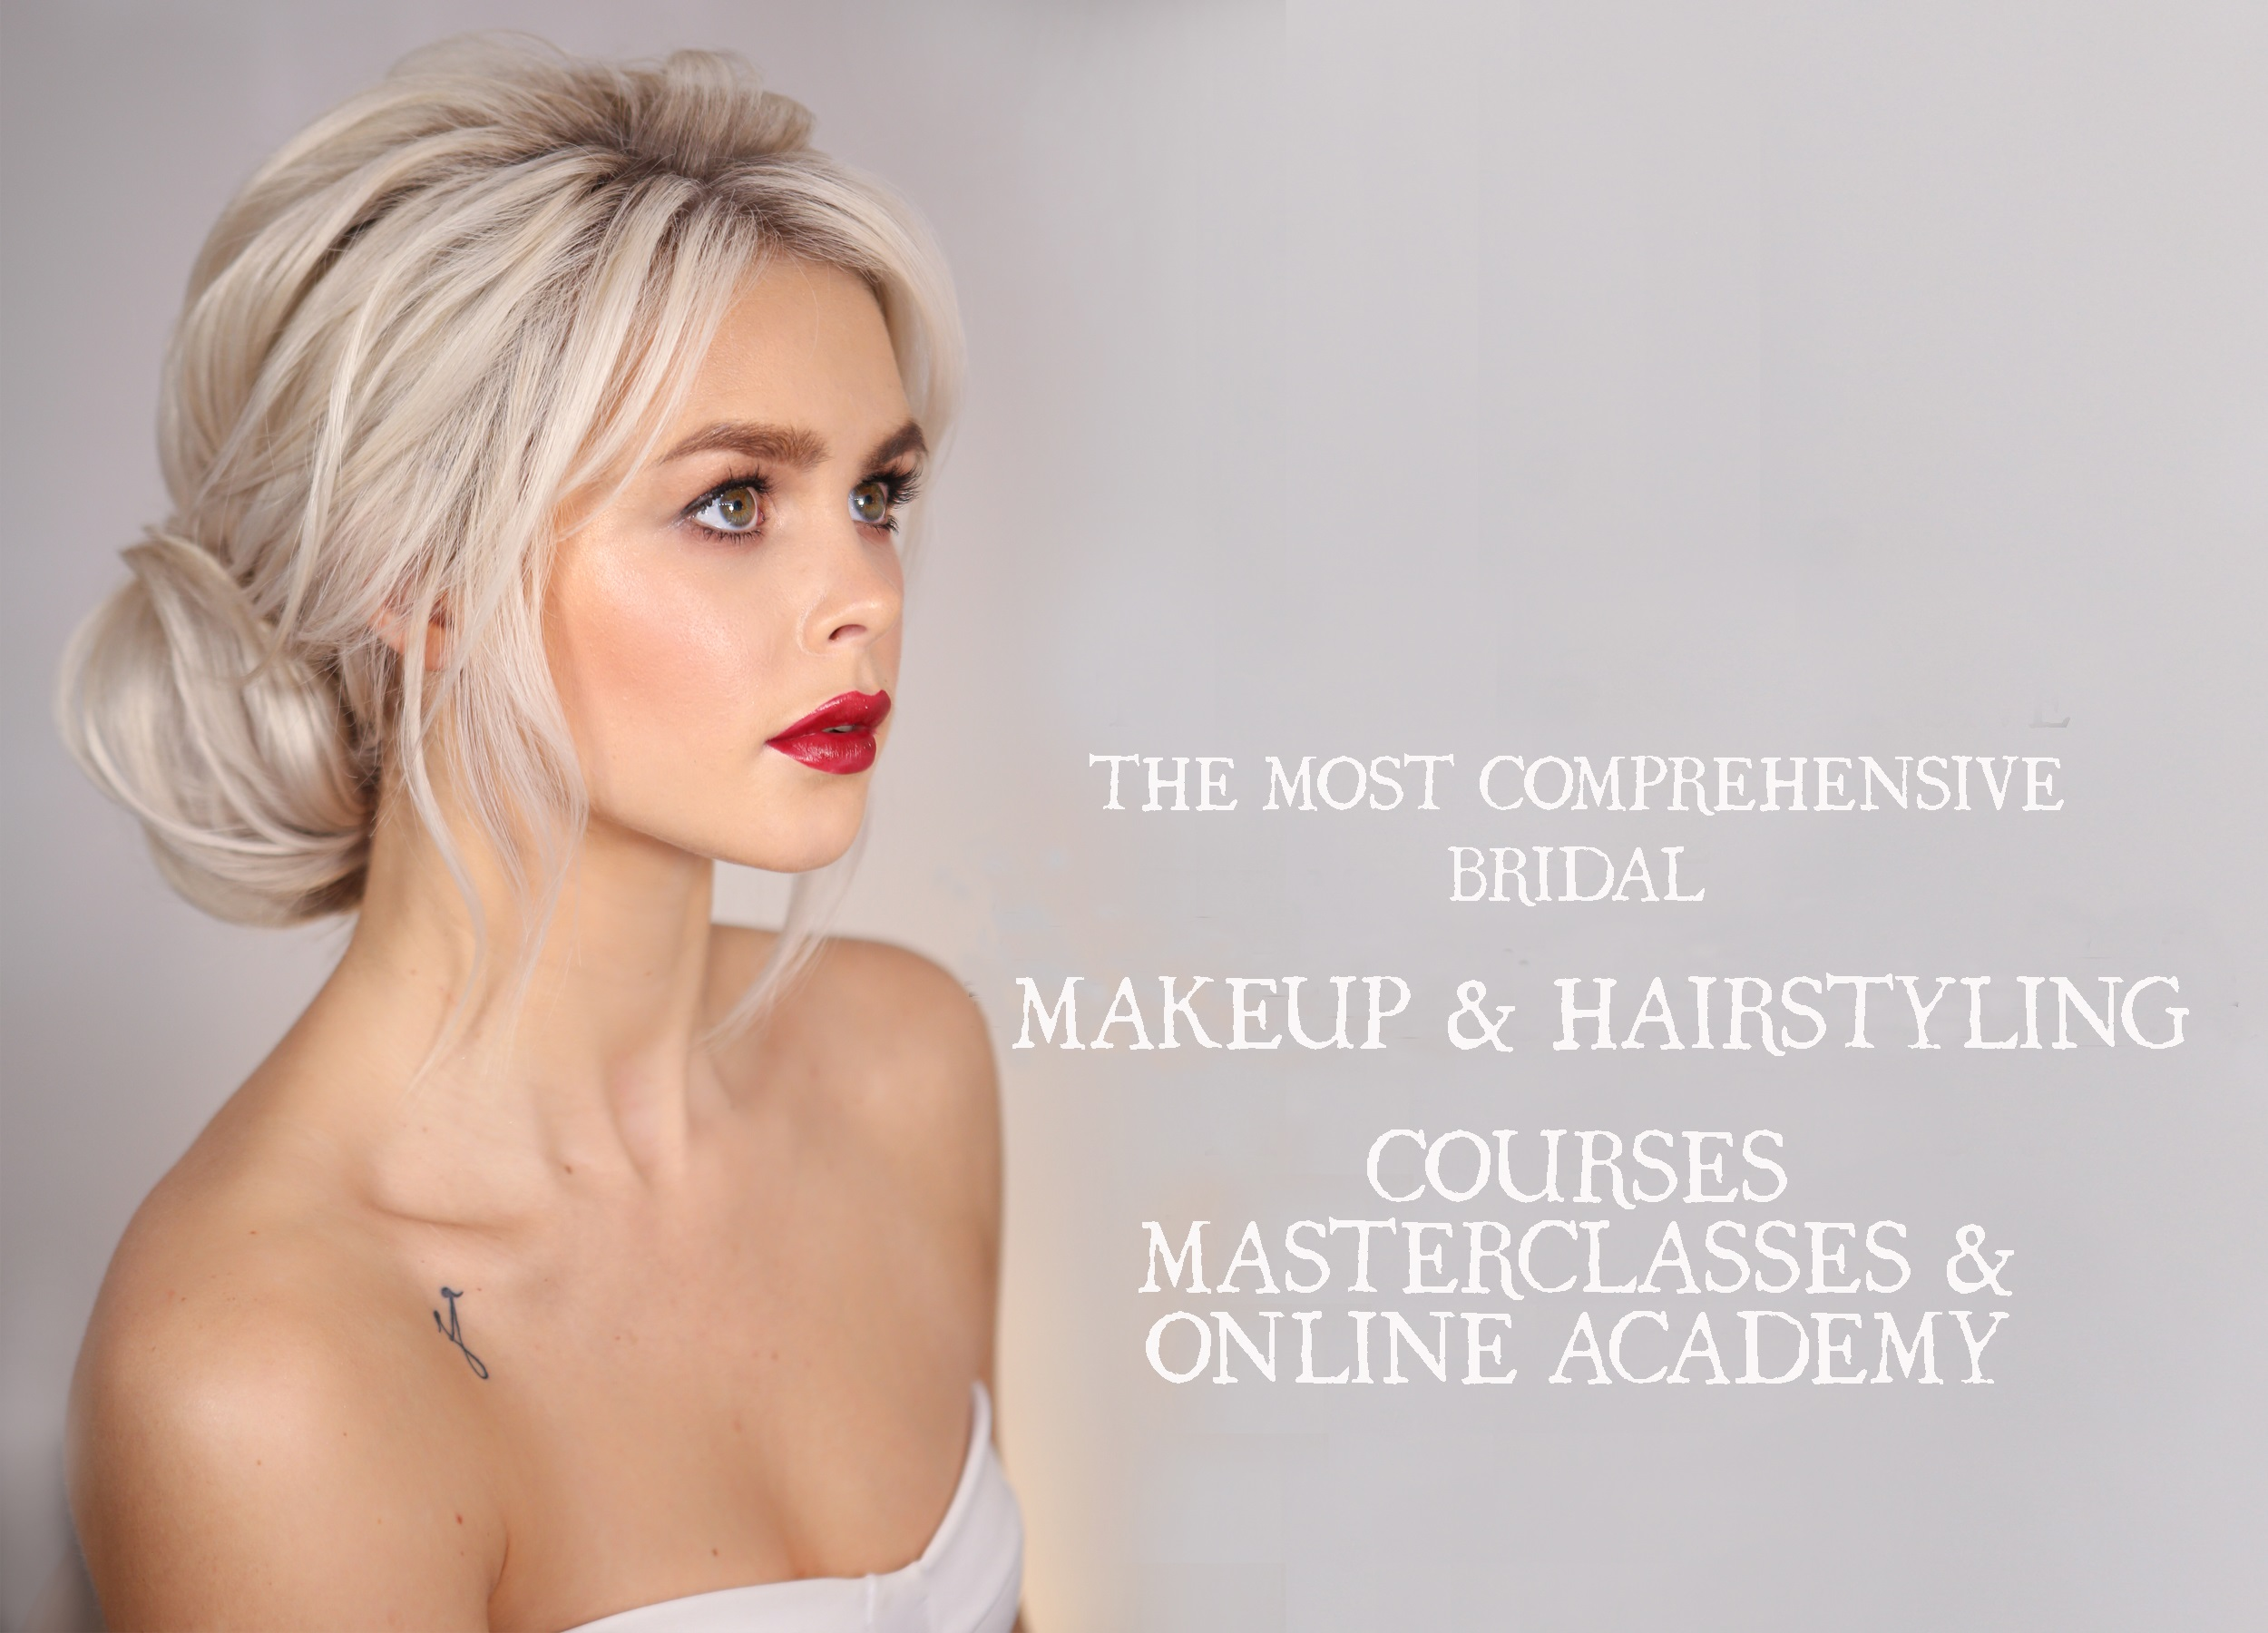 best online makeup courses,best online makeup lessons,best online makeup tutorials,best online bridal makeup courses,best online bridal makeup lessons,best online bridal makeup tutorials,best on-line makeup courses,best on-line makeup lessons,best on-line makeup tutorials,best on-line bridal makeup courses,best on-line bridal makeup lessons,best on-line bridal makeup tutorials,best online hair courses,best online hair lessons,best online hair tutorials,best online bridal hair courses,best online bridal hair lessons,best online bridal hair tutorials,best on-line hair courses,best on-line hair lessons,best on-line hair tutorials,best on-line bridal hair courses,best on-line bridal hair lessons,best on-line bridal hair tutorials,best online hairstyling courses,best online hairstyling lessons,best online hairstyling tutorials,best online bridal hairstyling courses,best online bridal hairstyling lessons,best online bridal hairstyling tutorials,best on-line hairstyling courses,best on-line hairstyling lessons,best on-line hairstyling tutorials,best on-line bridal hairstyling courses,best on-line bridal hairstyling lessons,best on-line bridal hairstyling tutorials